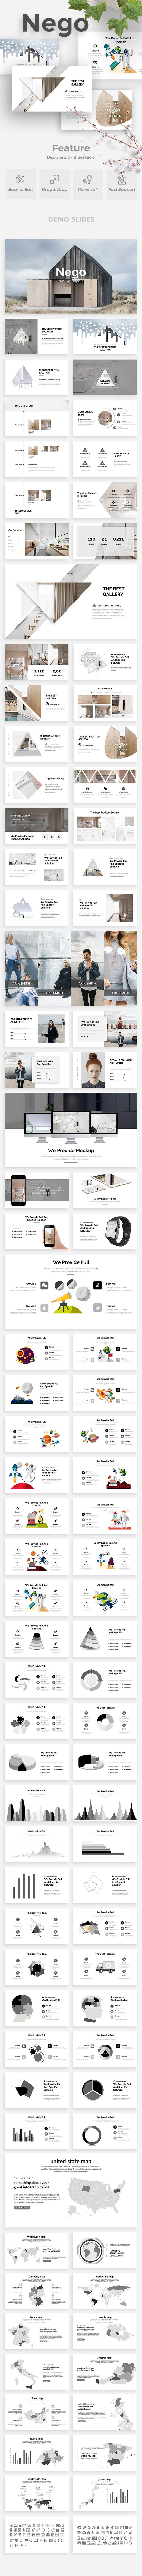 Nego Creative Powerpoint Template - Creative #PowerPoint Templates